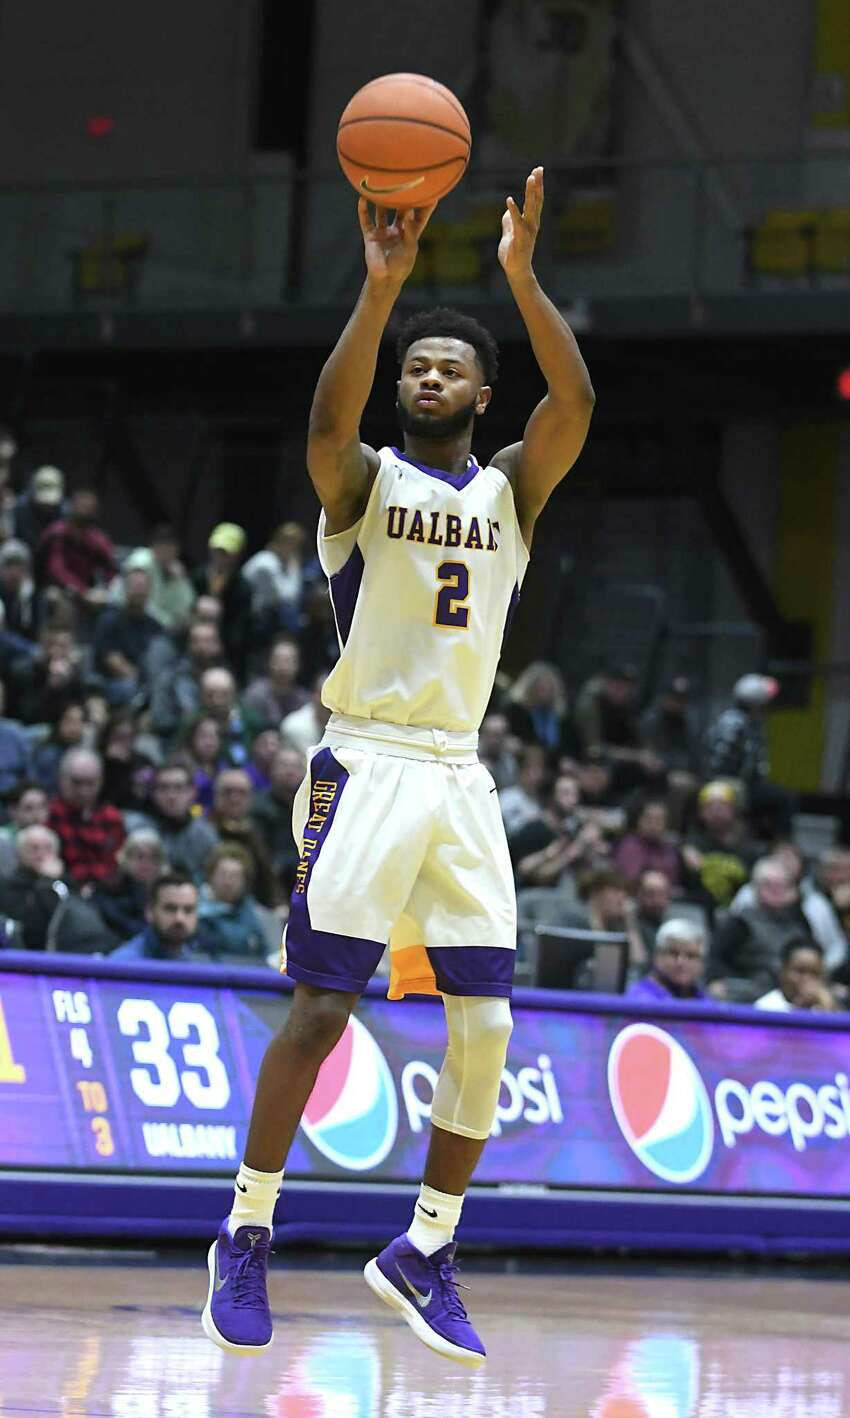 University at Albany's Ahmad Clark takes a shot during a basketball game against Stony Brook at SEFCU Arena on Wednesday, Jan. 10, 2018 in Albany, N.Y. (Lori Van Buren/Times Union)